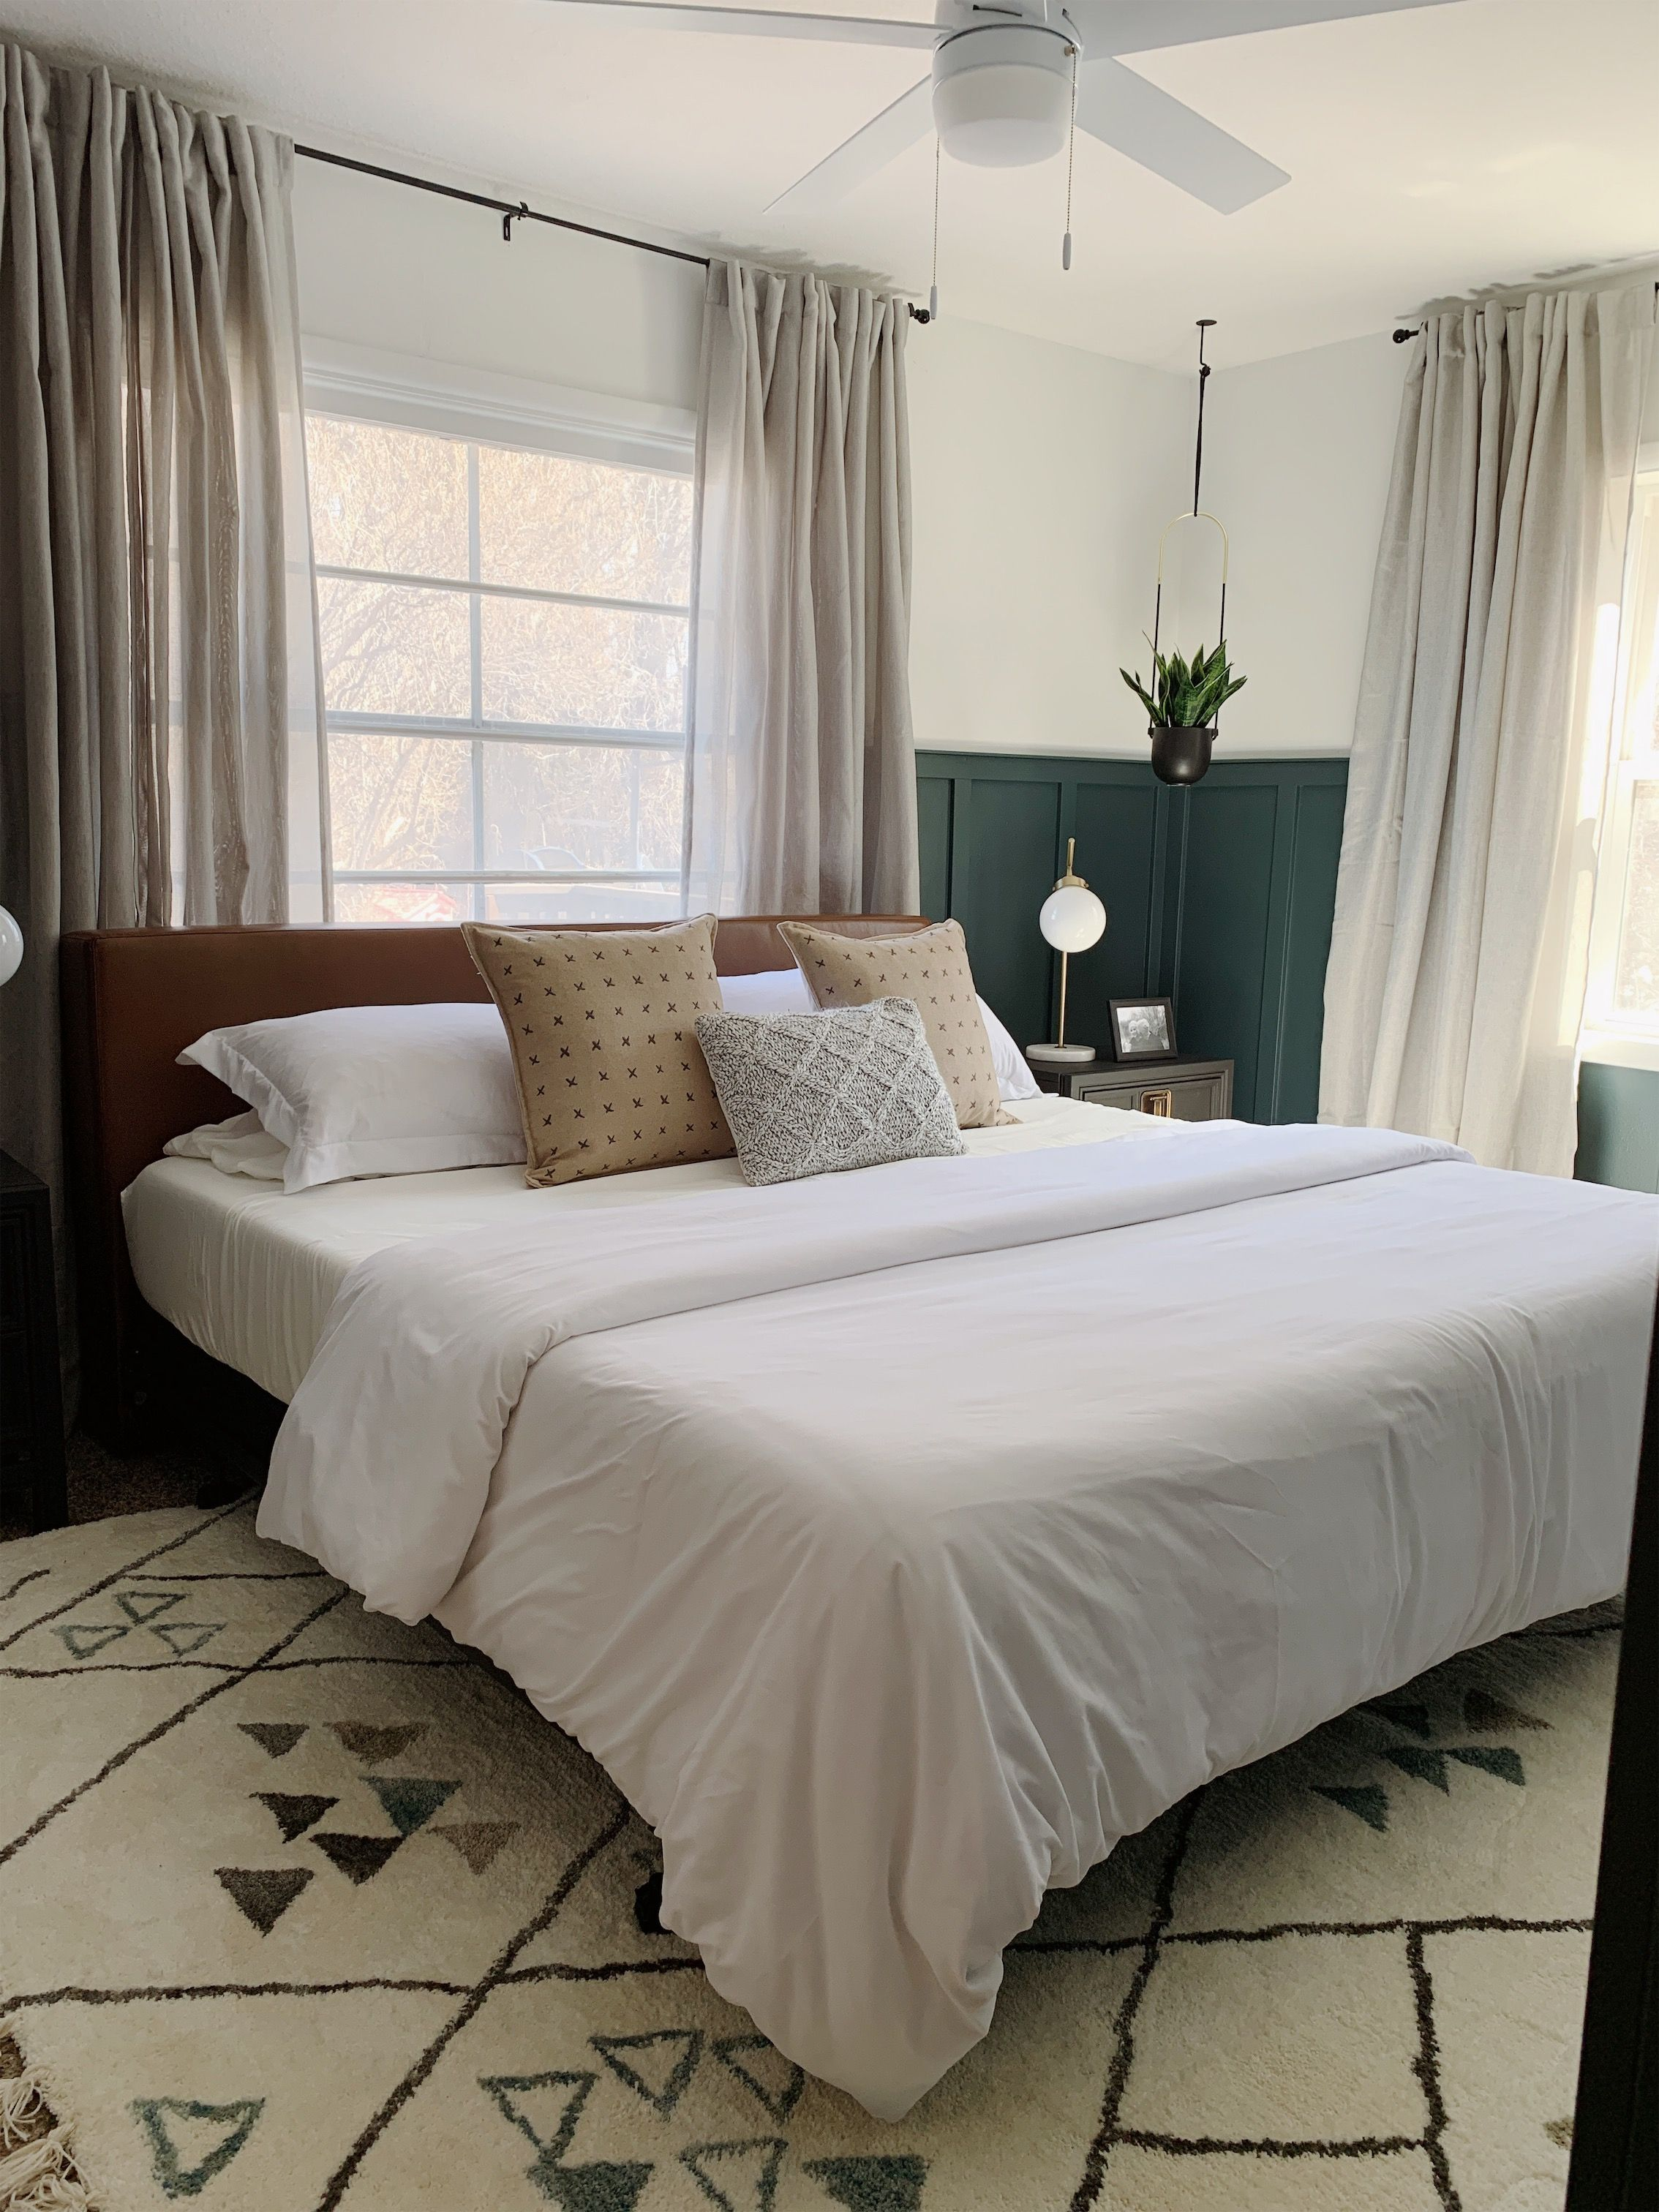 A Modern Moody Bedroom Reveal Home Decor Bedroom Bedroom Design Moody Bedroom